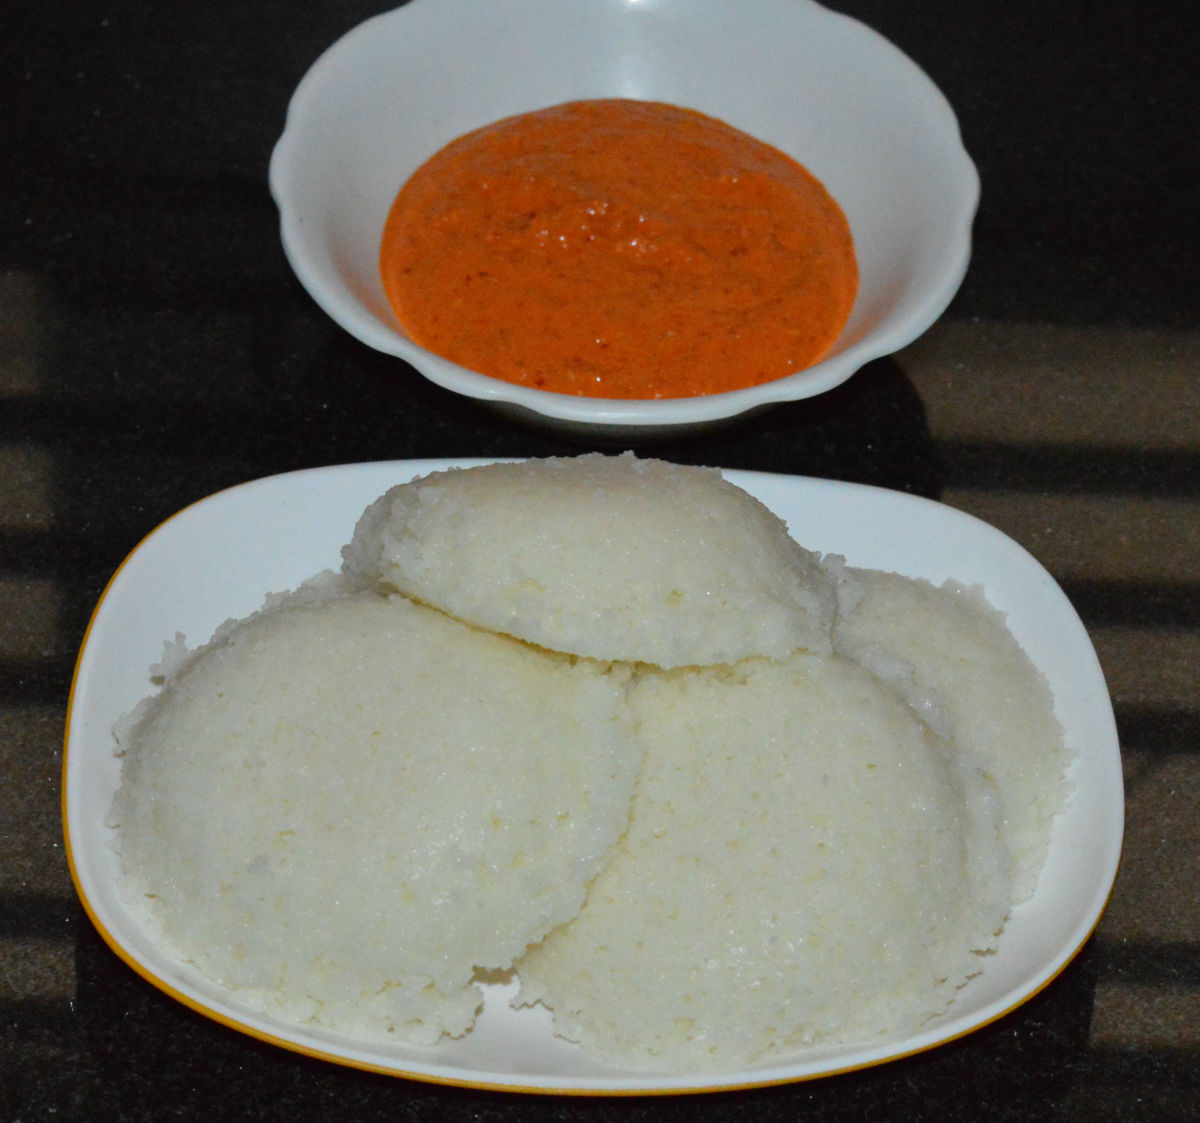 Enjoy eating these soft, spongy, and tasty idlis!